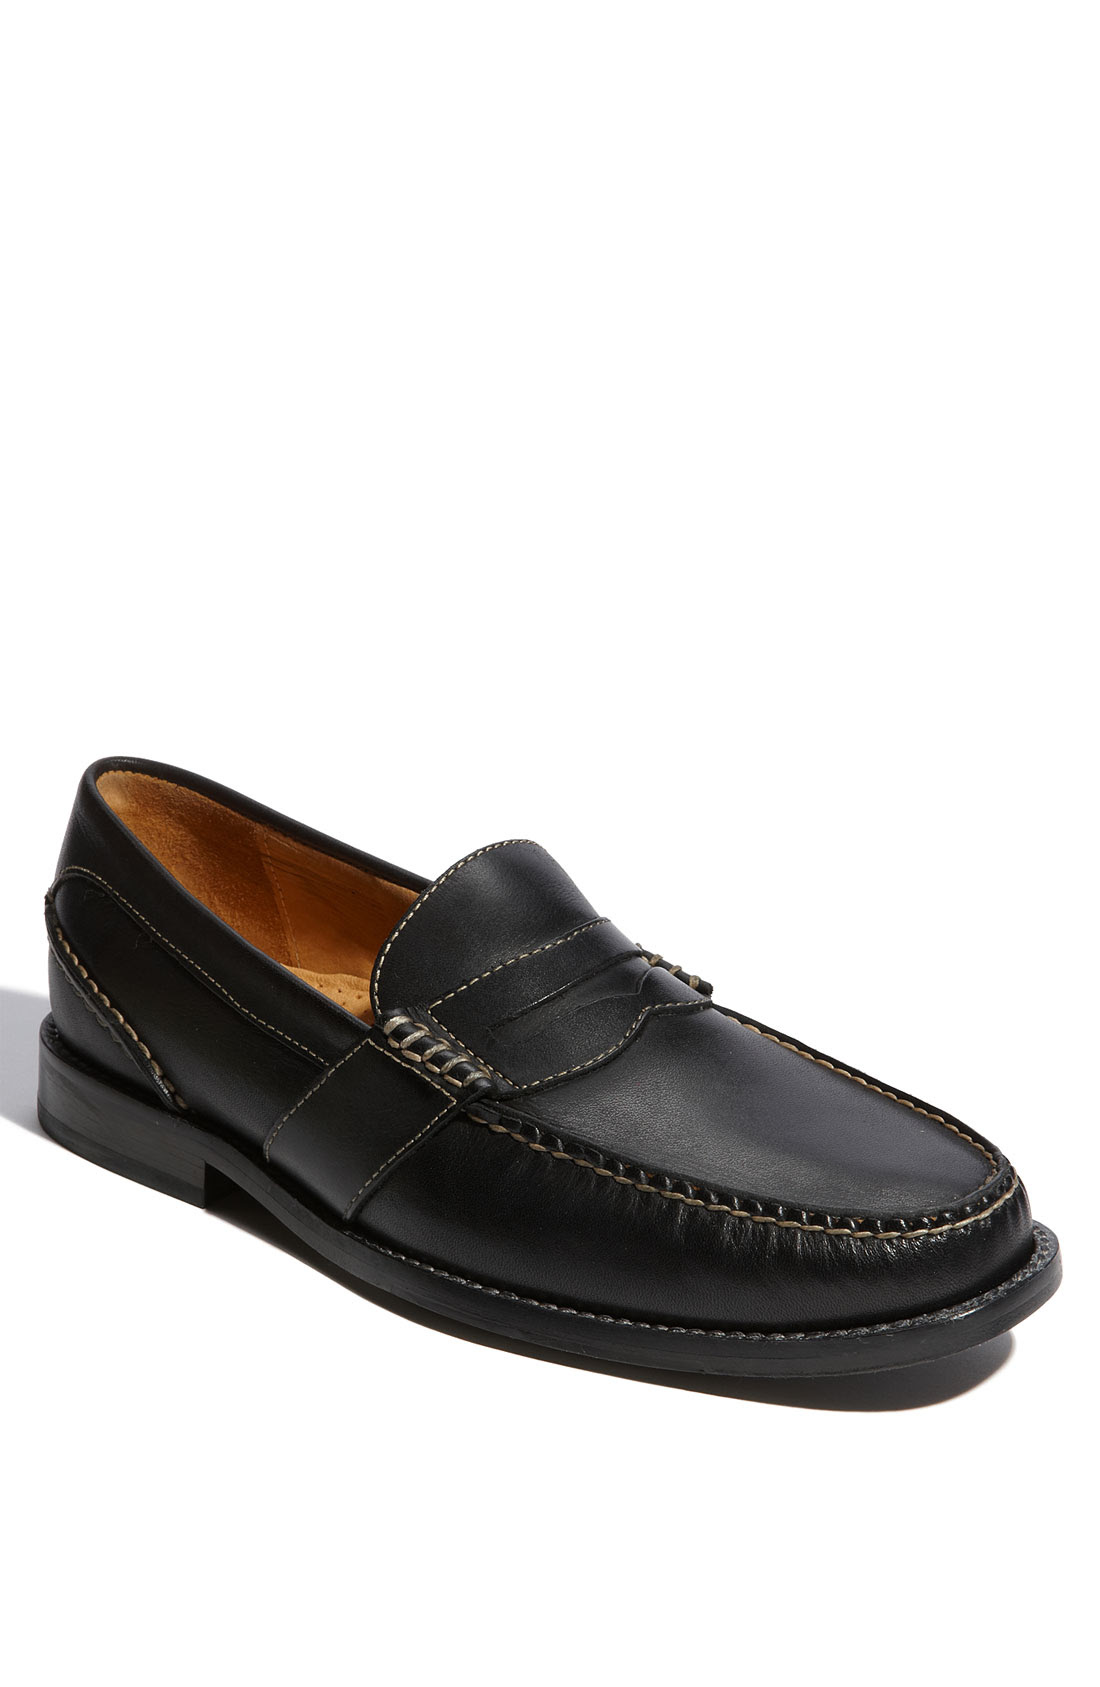 Sperry Top-sider Gold Cup Dress Casual Penny Loafer in ...